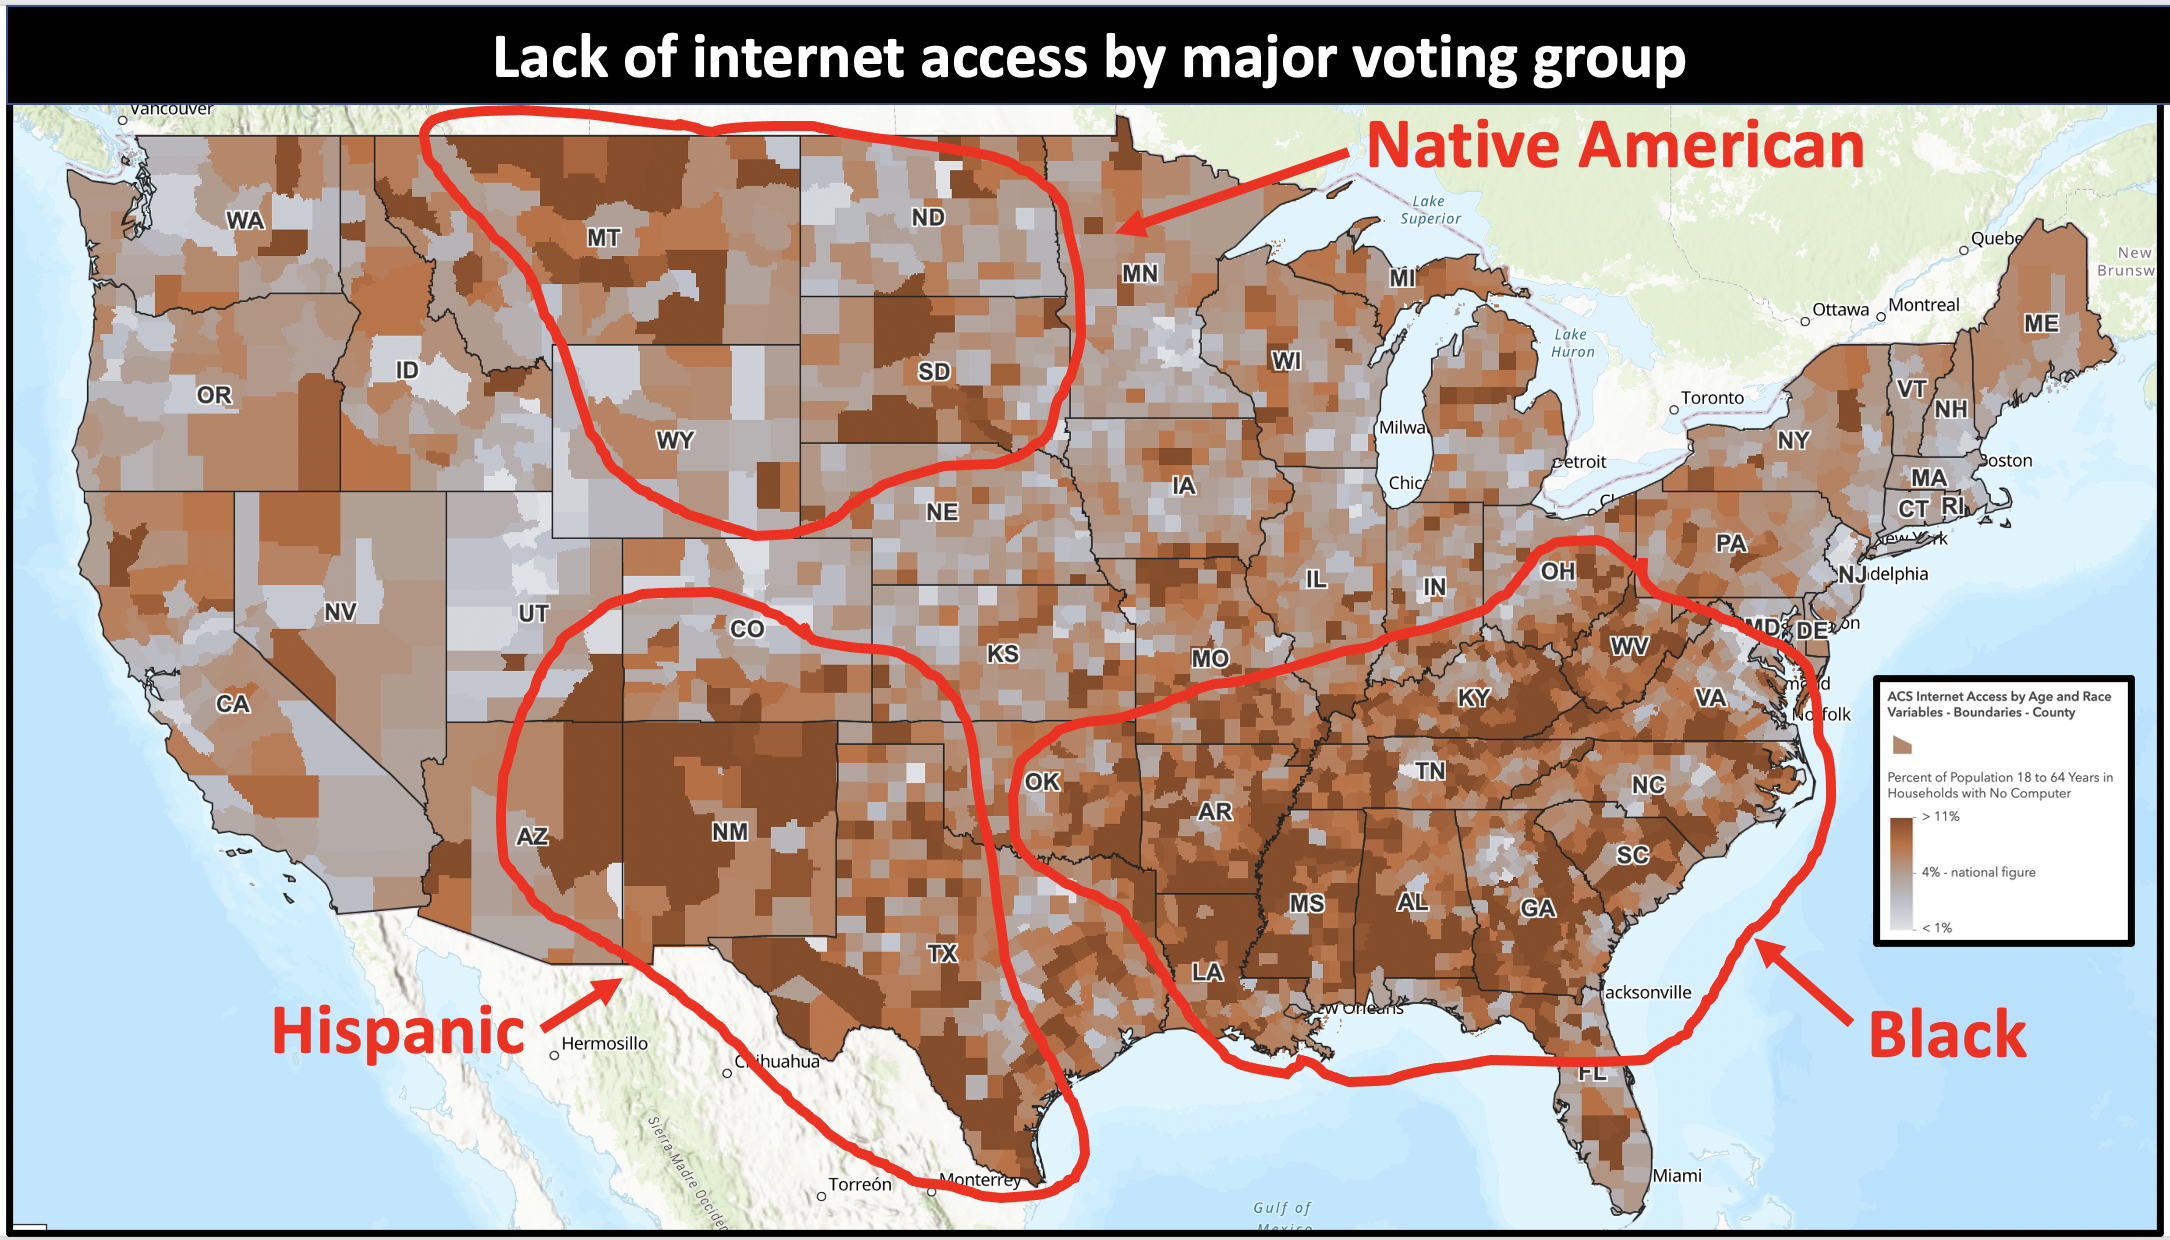 Many Black, Brown and Indigenous voters are disenfranchised by denying them access to the internet where they can get information on how to vote.